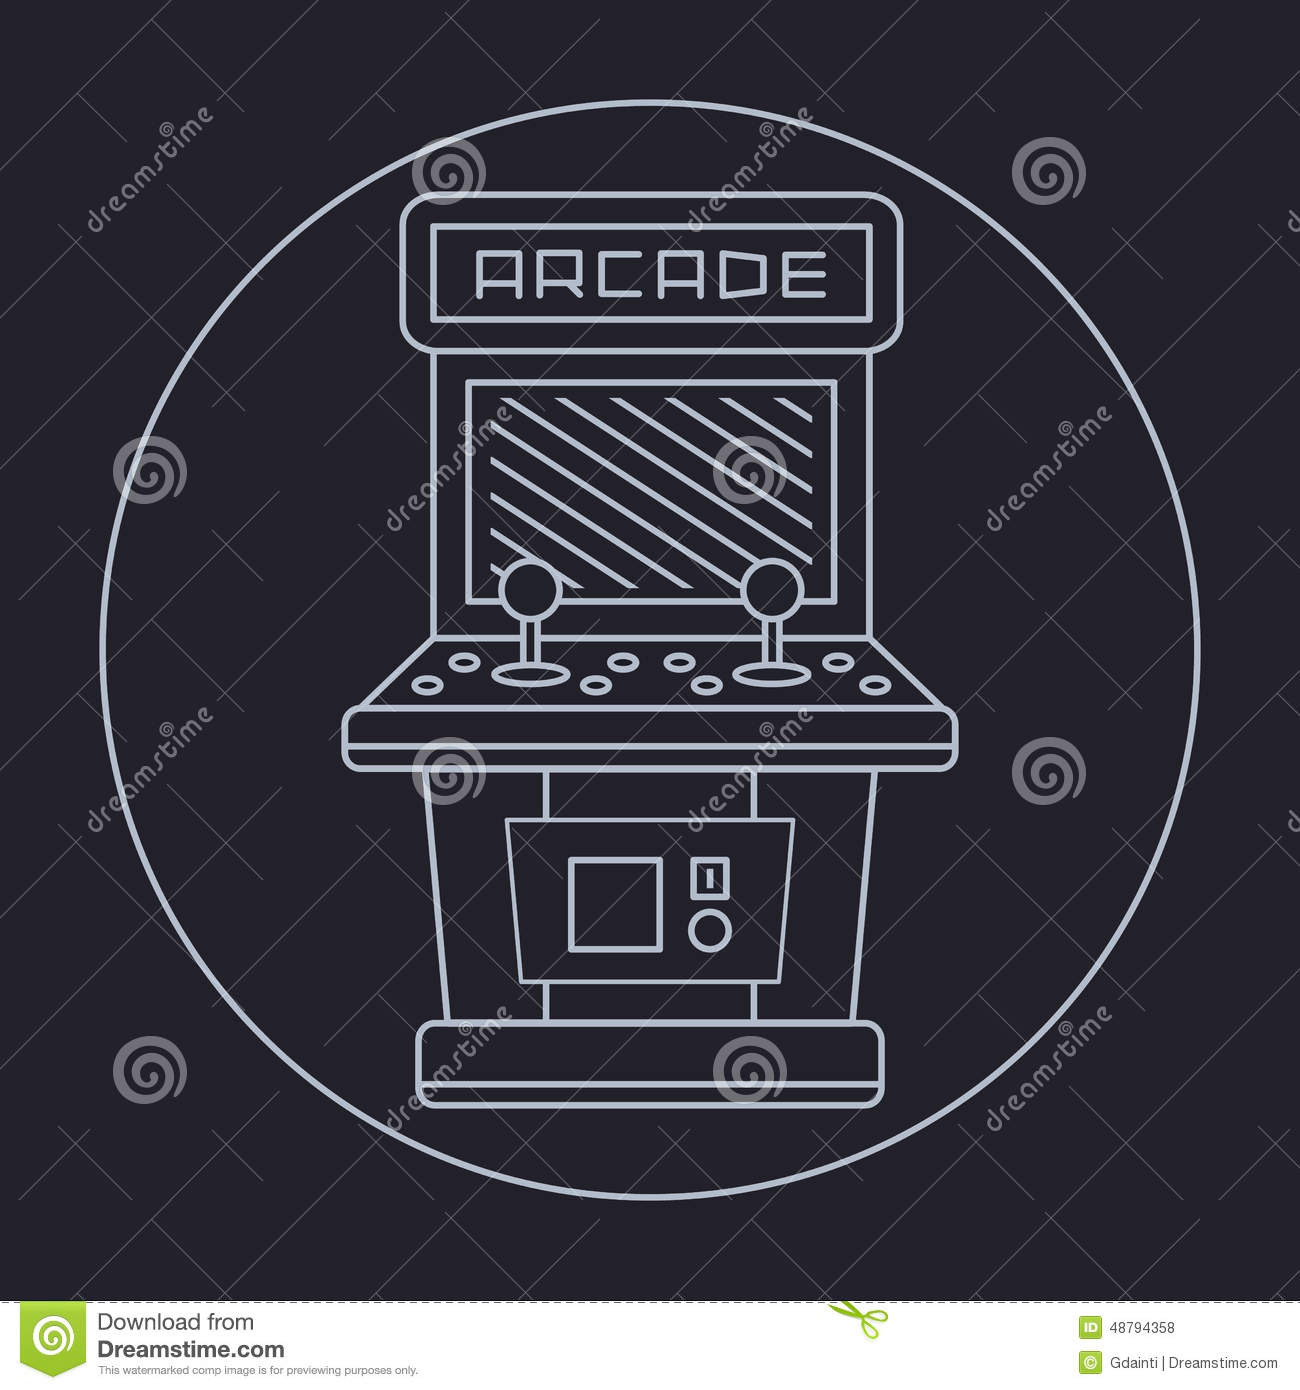 Simple Line Art Background : Pixel art style simple line drawing of arcade stock vector